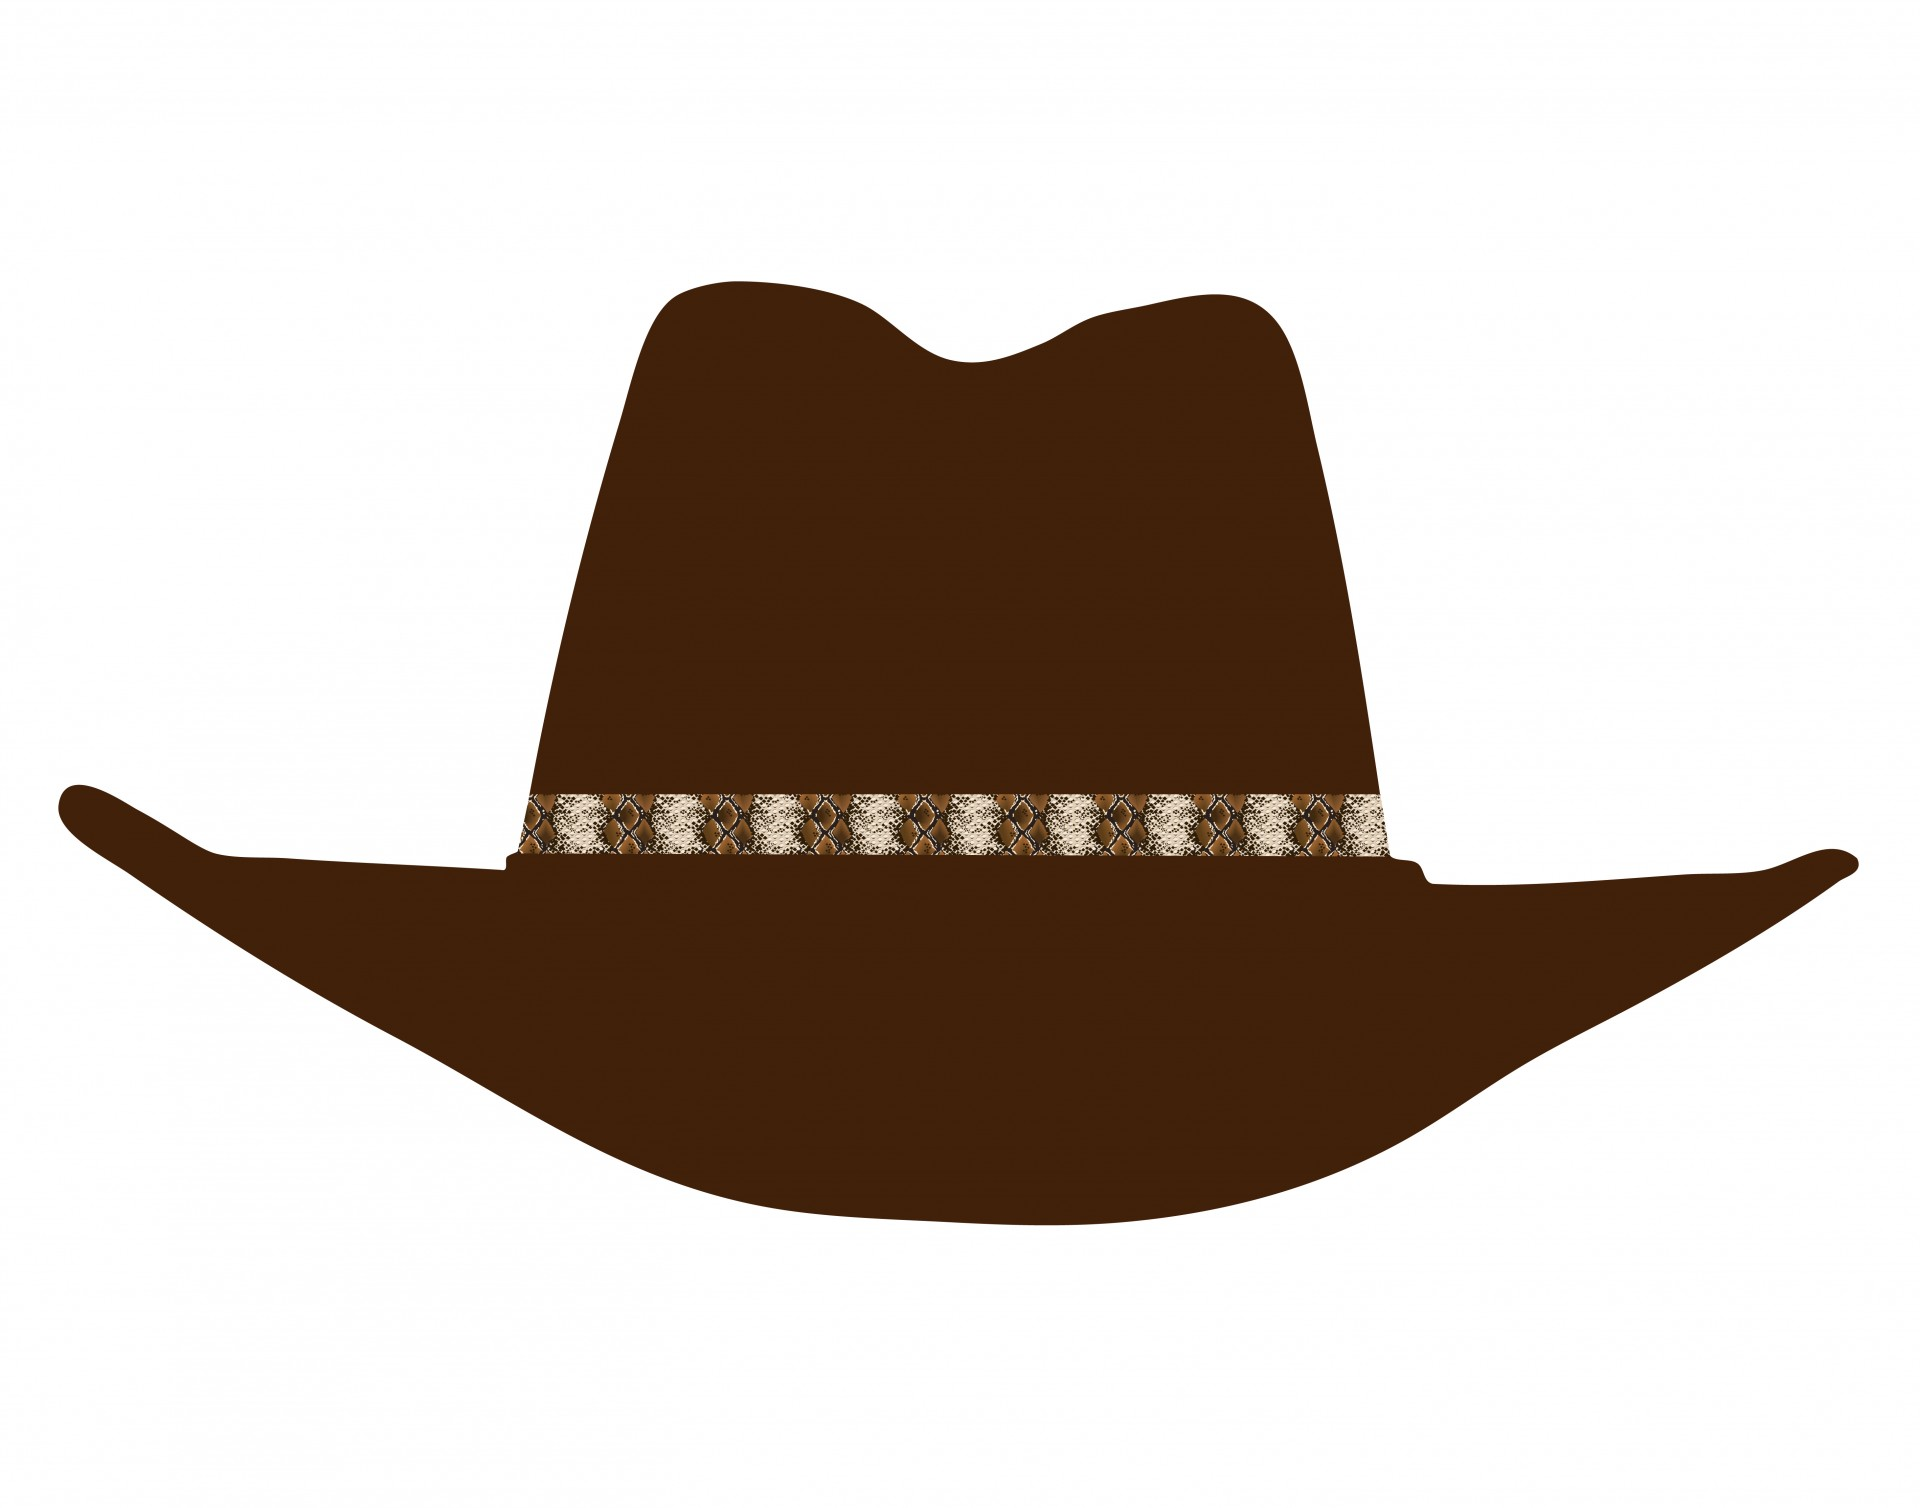 Cowboy Hat Clip Art Free Stock Photo Hd   Public Domain Pictures